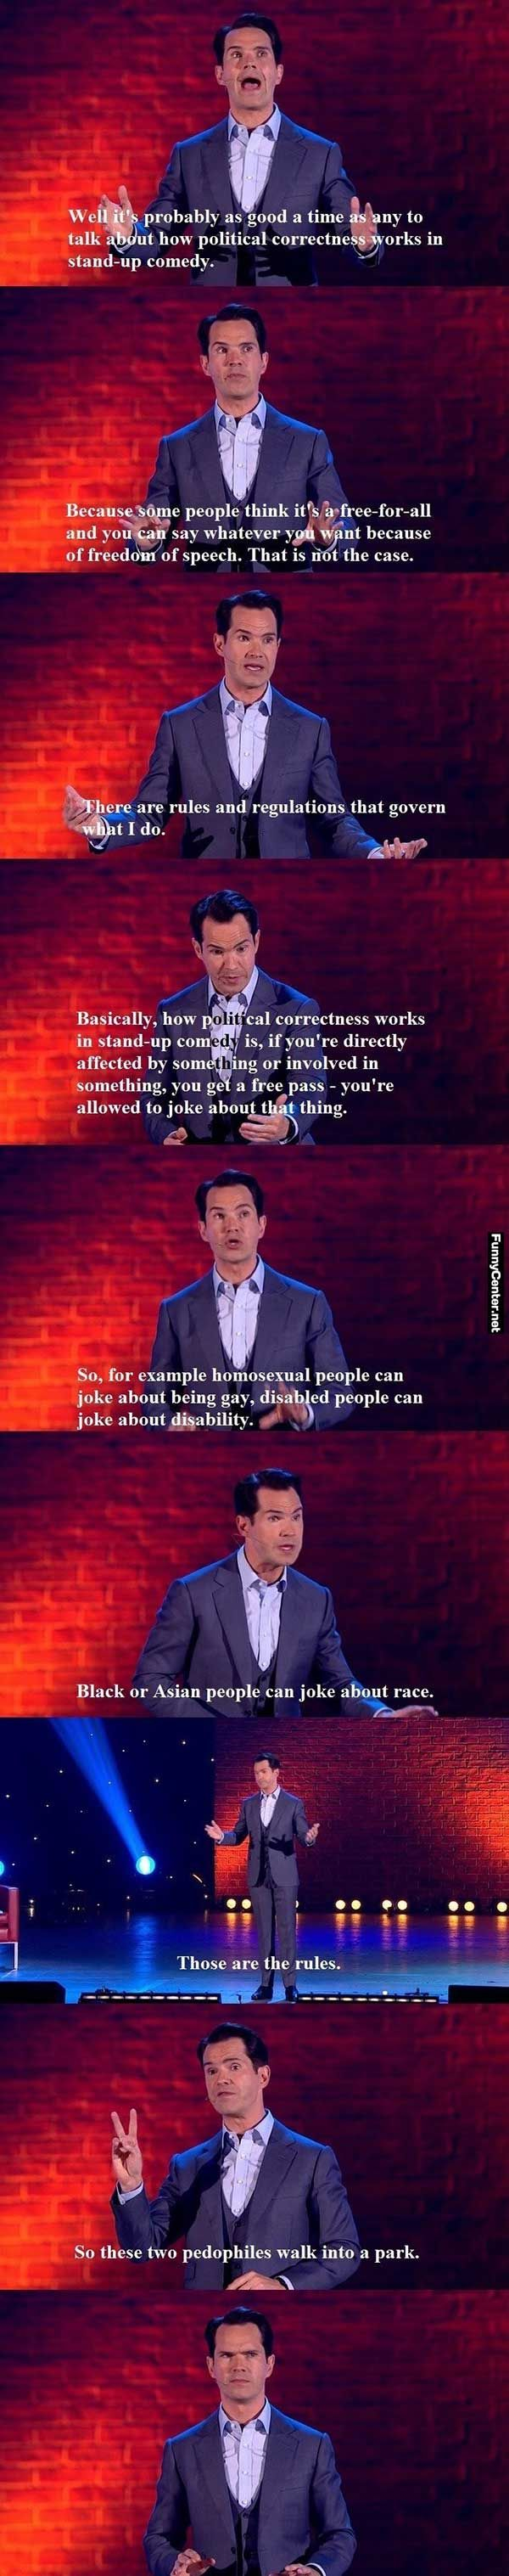 "Fuck the joke police you know what ""governs"" stand up comedy it's whether or not the joke is funny not who gets offended by it"